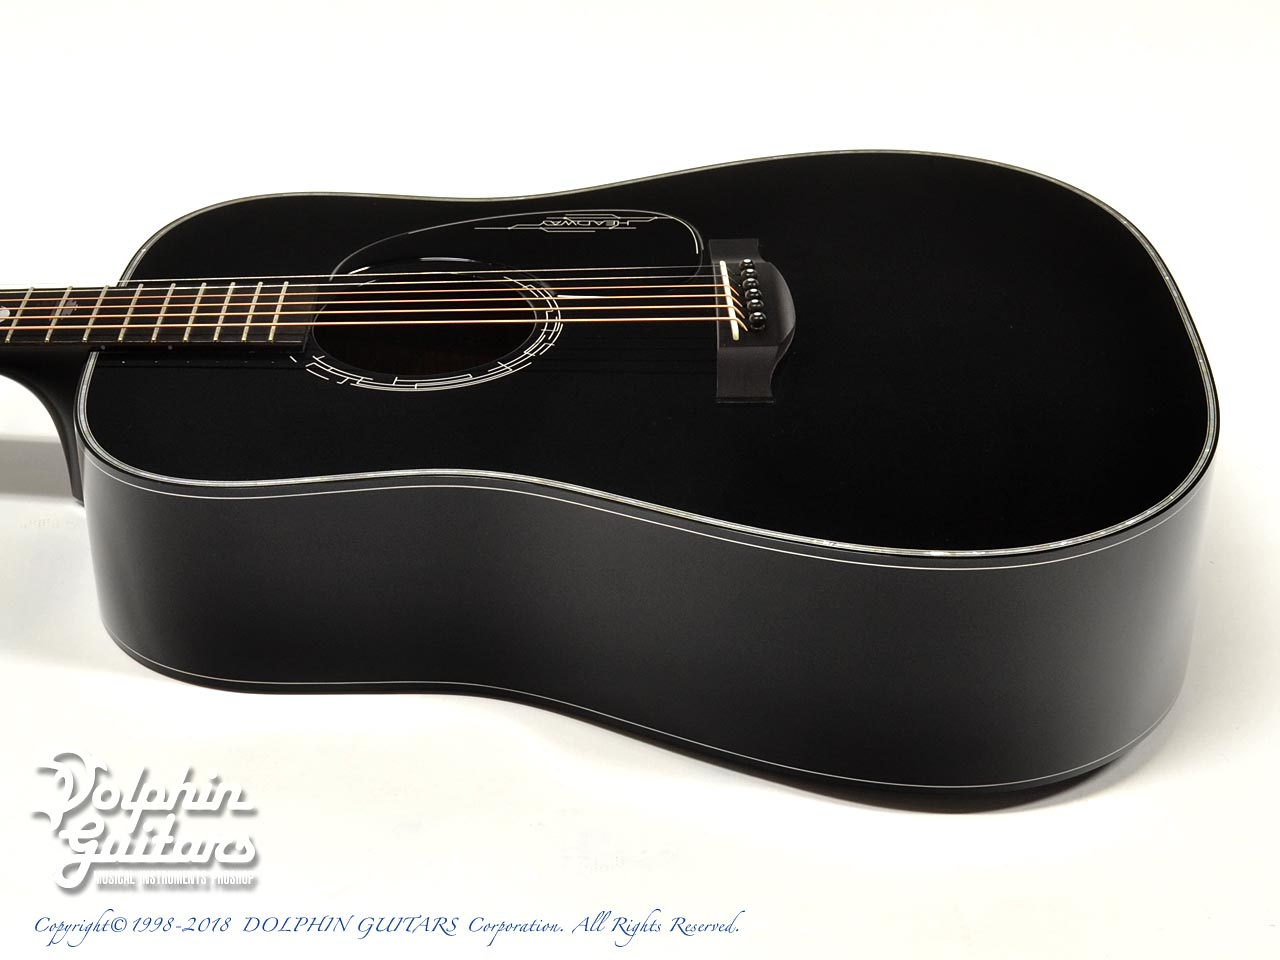 HEADWAY: HD-JET BLACK DX ( Adirondack Spruce & Indian Rosewood) (2)